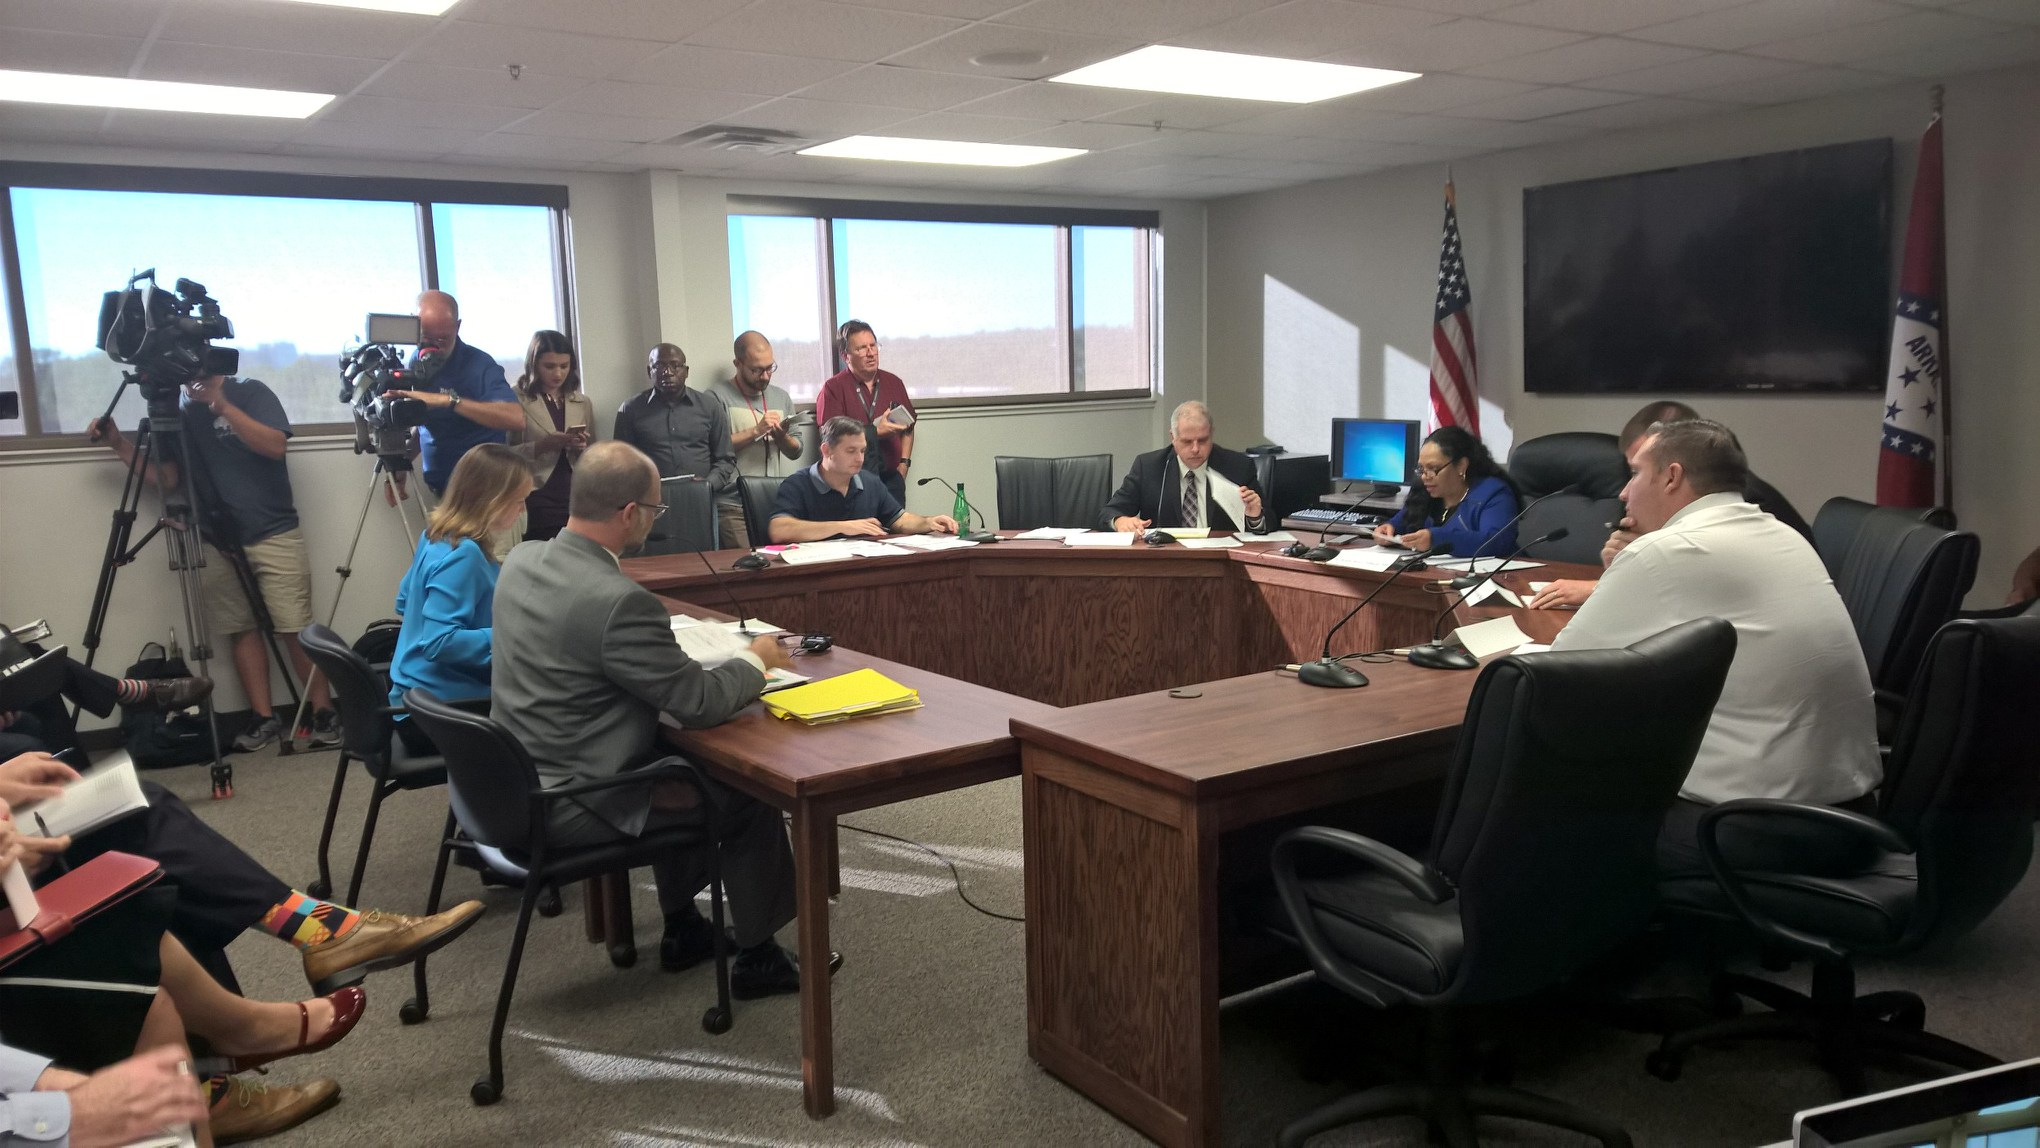 Updates from the October 16th Medical Marijuana Commission Meeting